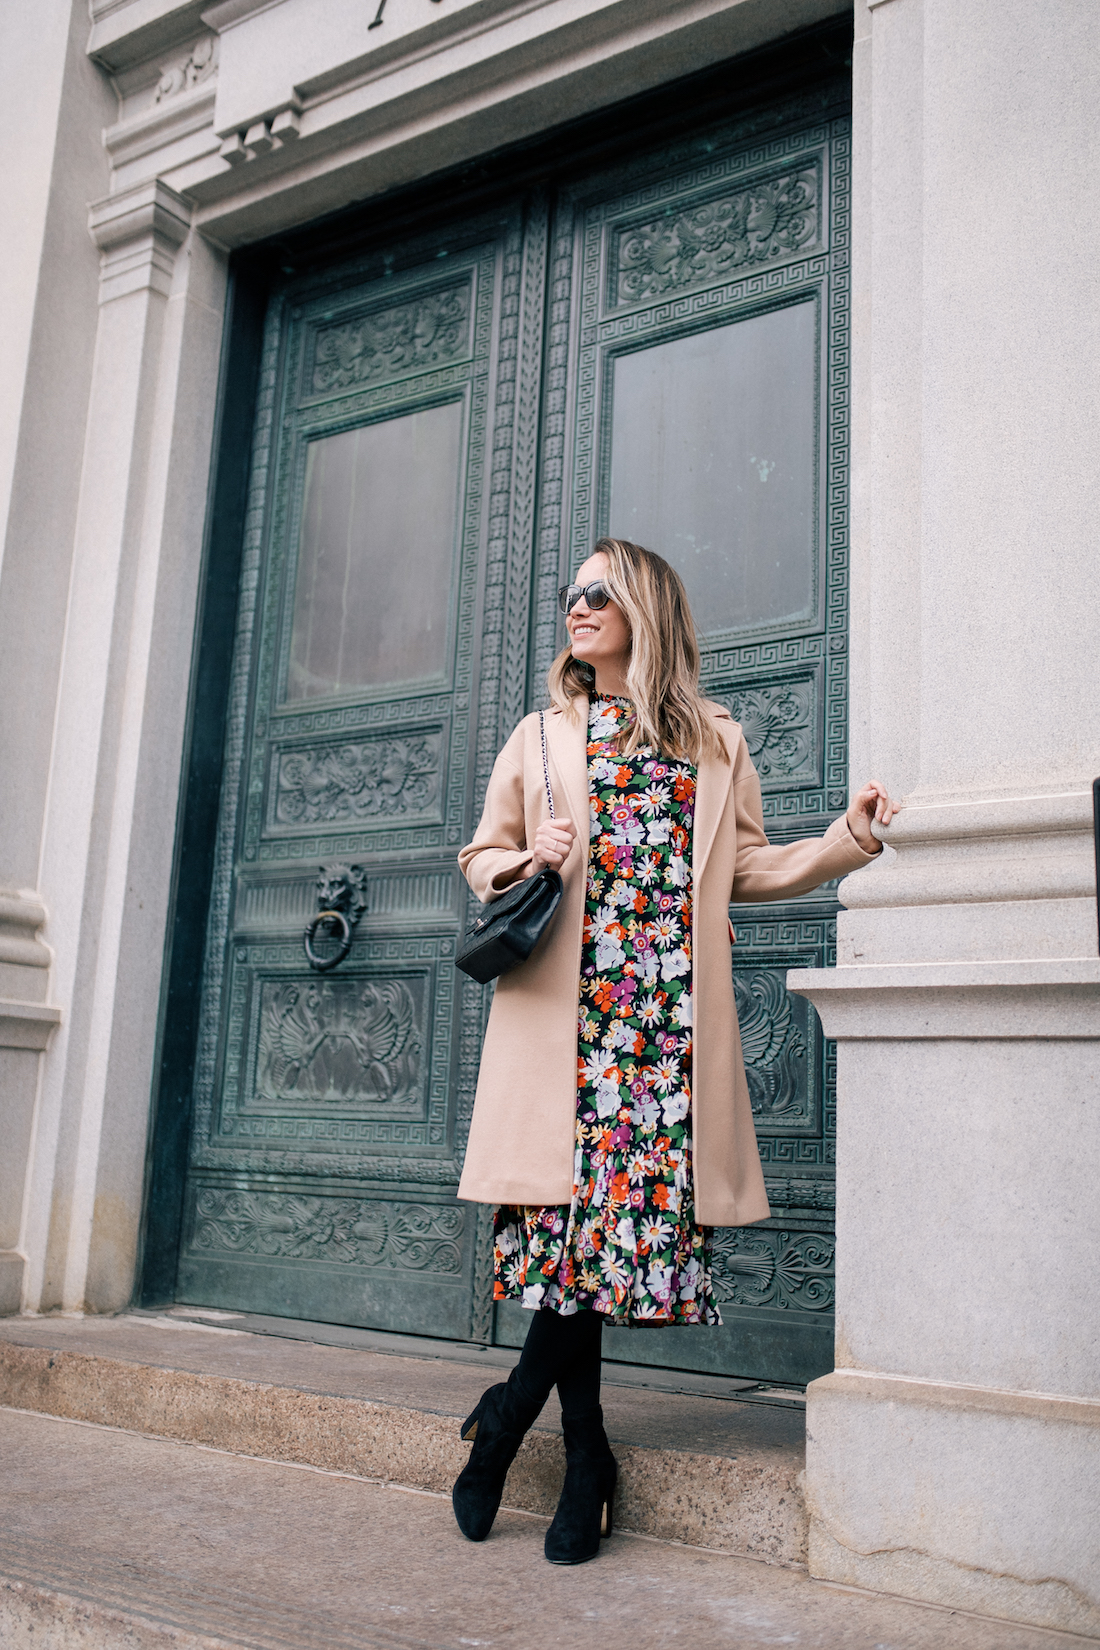 Outfit Details:Topshop Coat // L. K. Bennett Dress (gifted) // Express Tights// Marion Parke Boots // BaubleBar Green Lucite Hoops // Chanel Bag // Polaroid Sunglasses